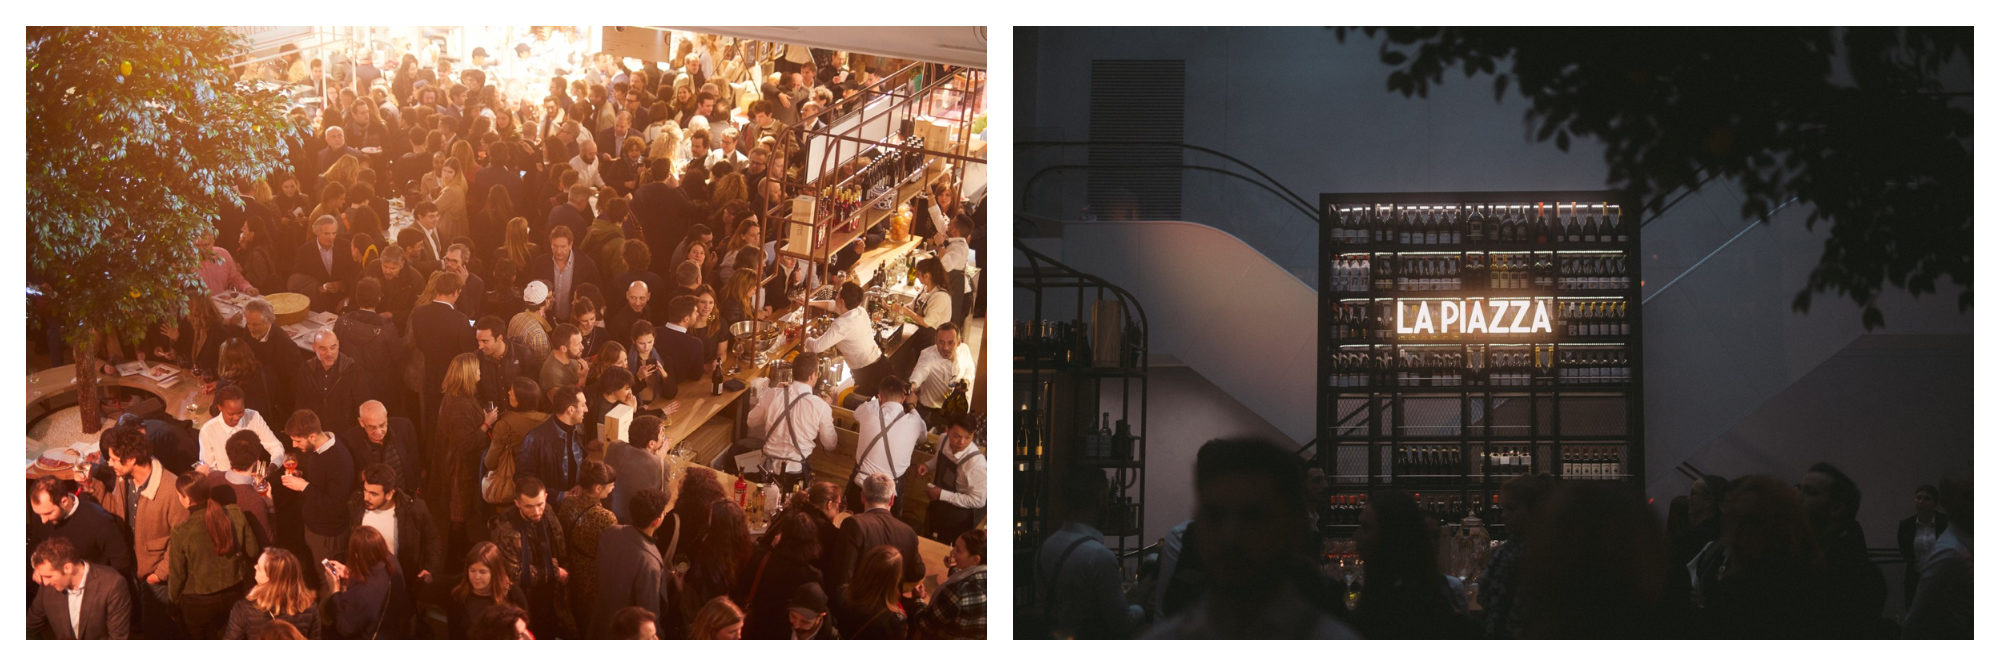 The crowds of punters at Eataly, the new epicenter for Italian food in Paris, come to enjoy a Spritz or two after work (left). The 'La Piazza' neon sign on the exterior of the Eataly buliding in Paris (right).